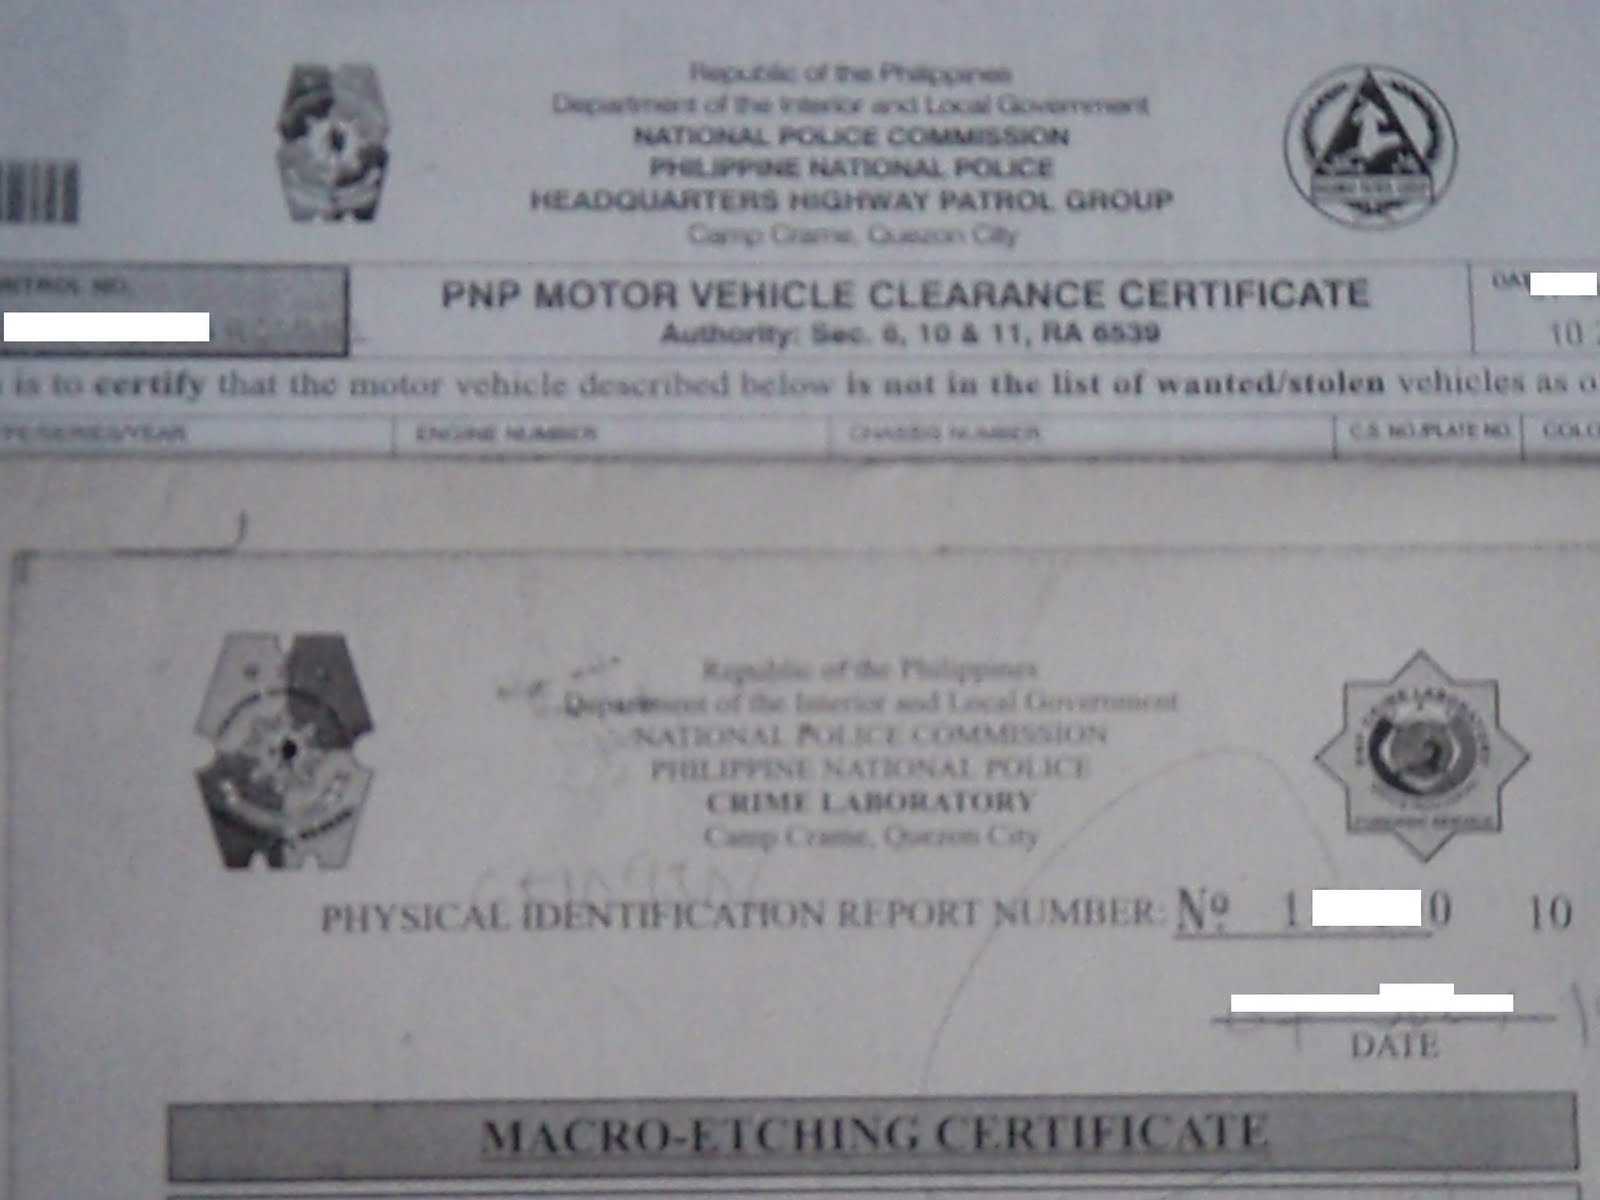 Motor Vehicle Clearance From Hpg Noelizm